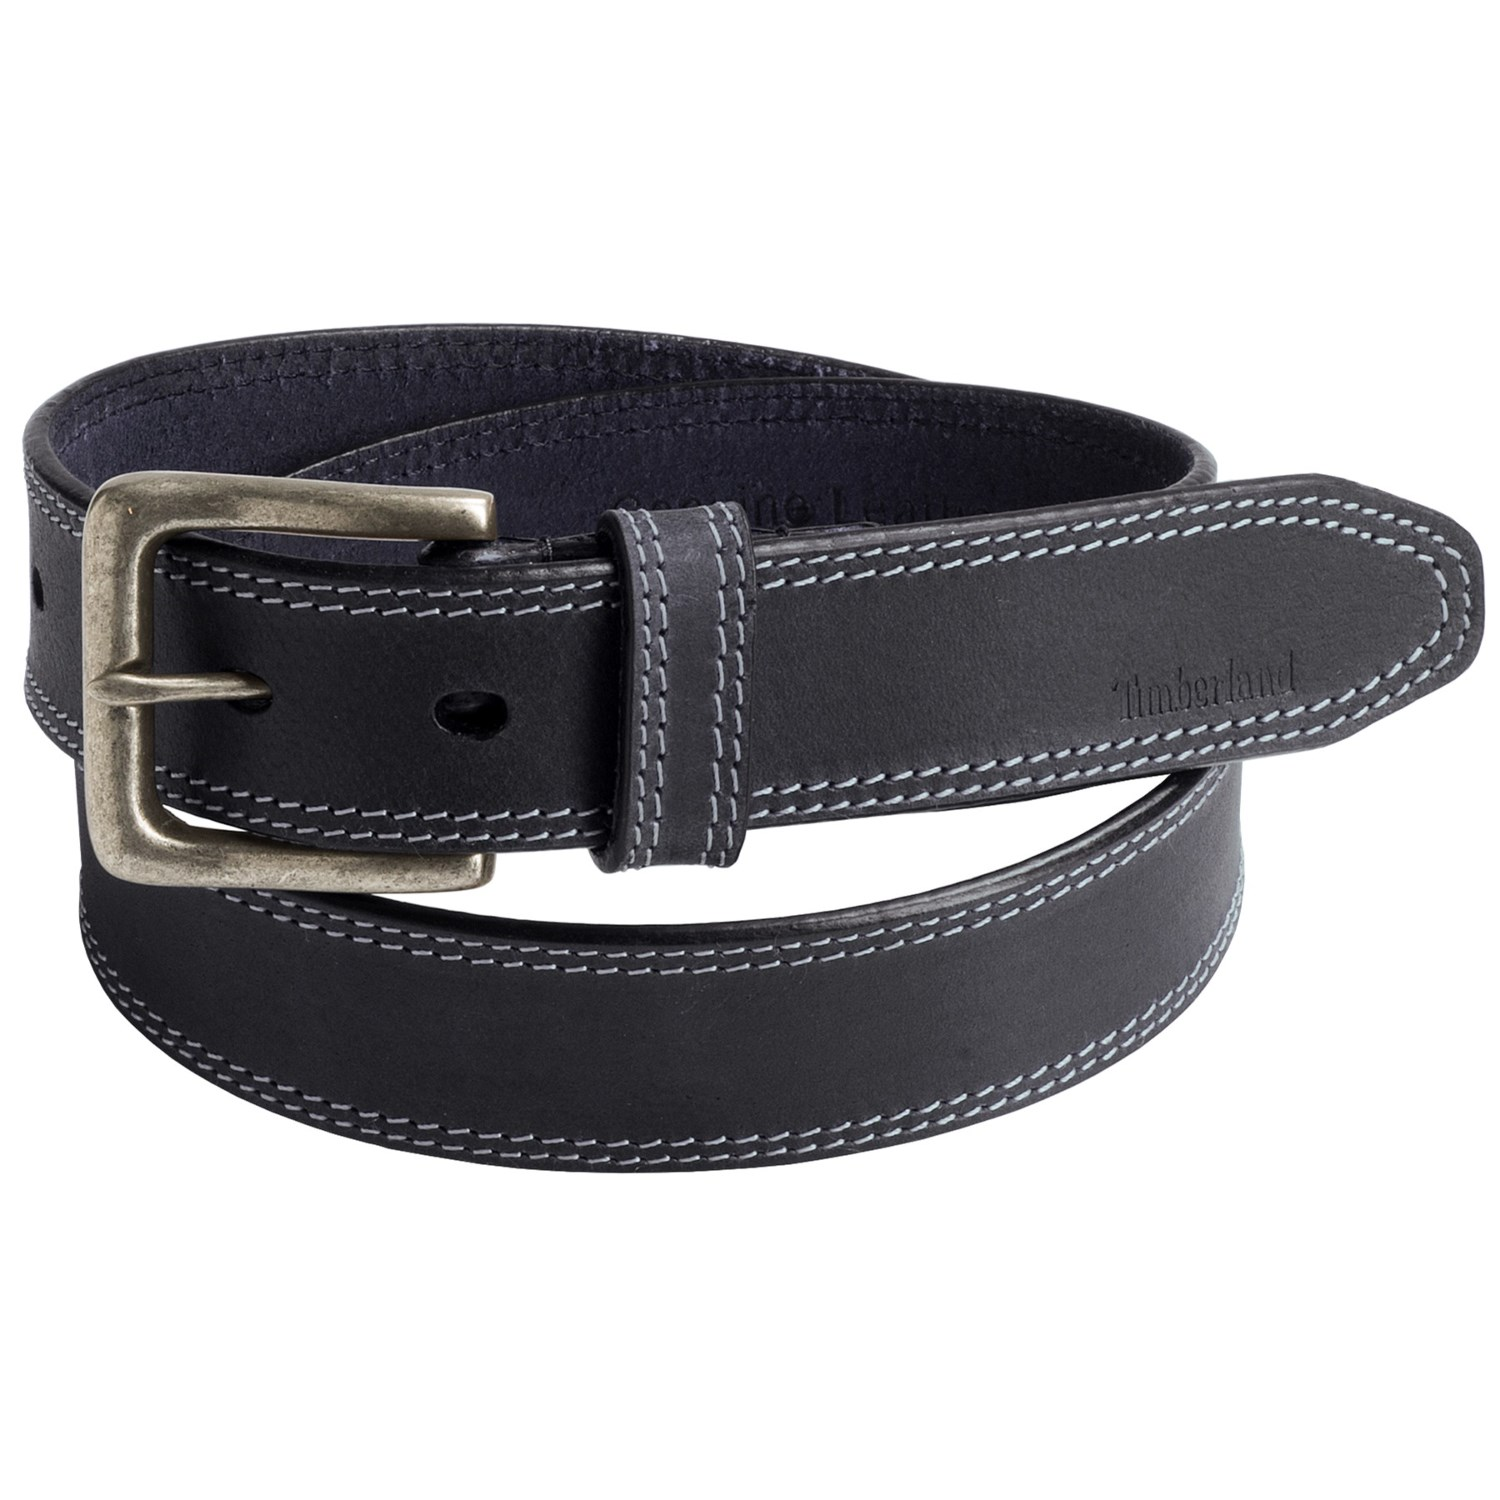 Welcome to V-Belt Guys Premium Conventional Wrapped Banded Classic Sized V-Belt Selection. Enjoy the Best Deals on our Classic A, B, C,and D Sized Banded V-Belts Today!